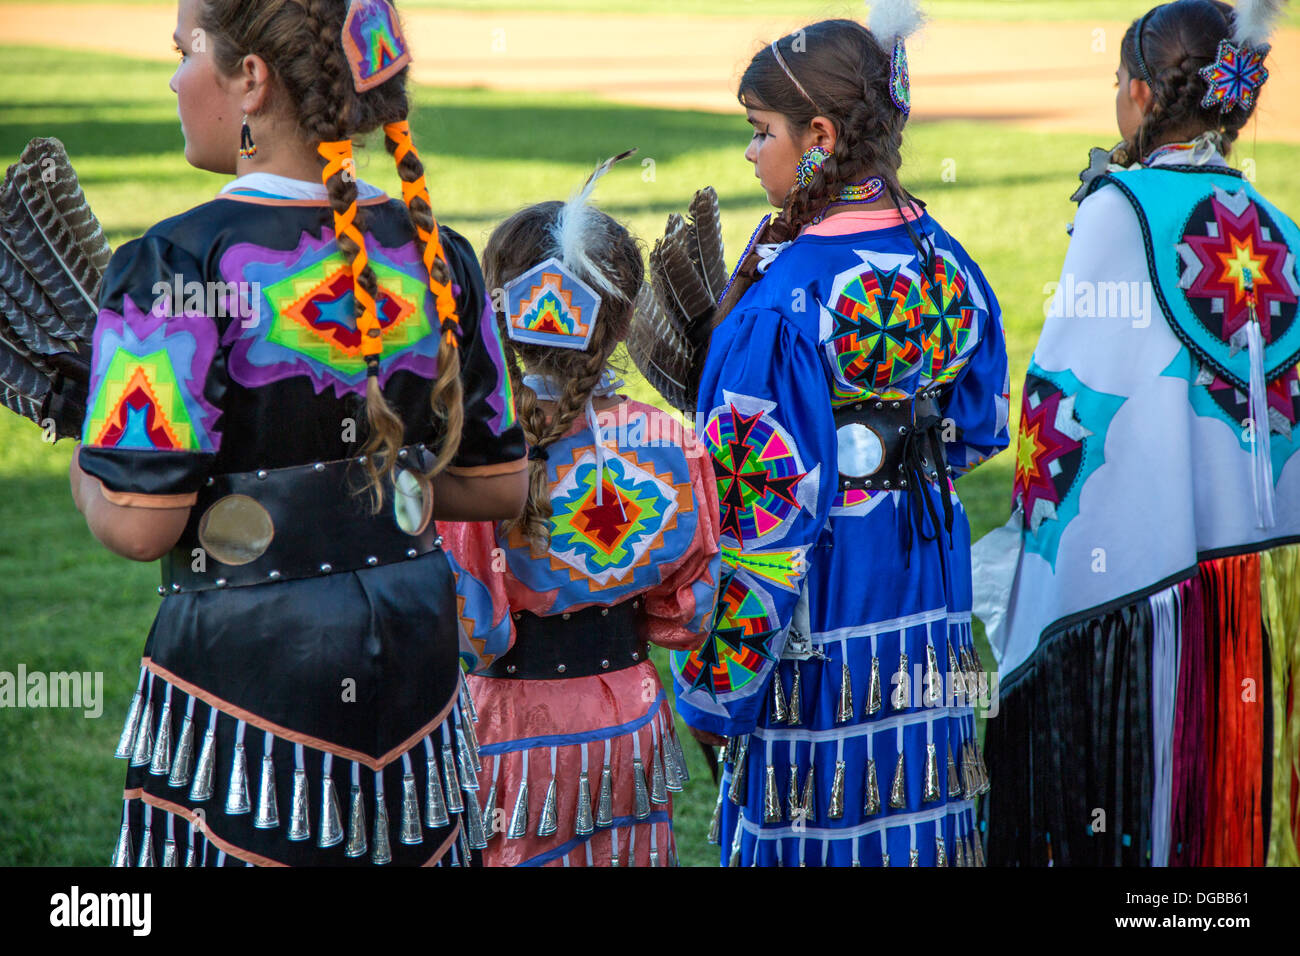 Young girls dressed in American Indian tribal clothing - Stock Image